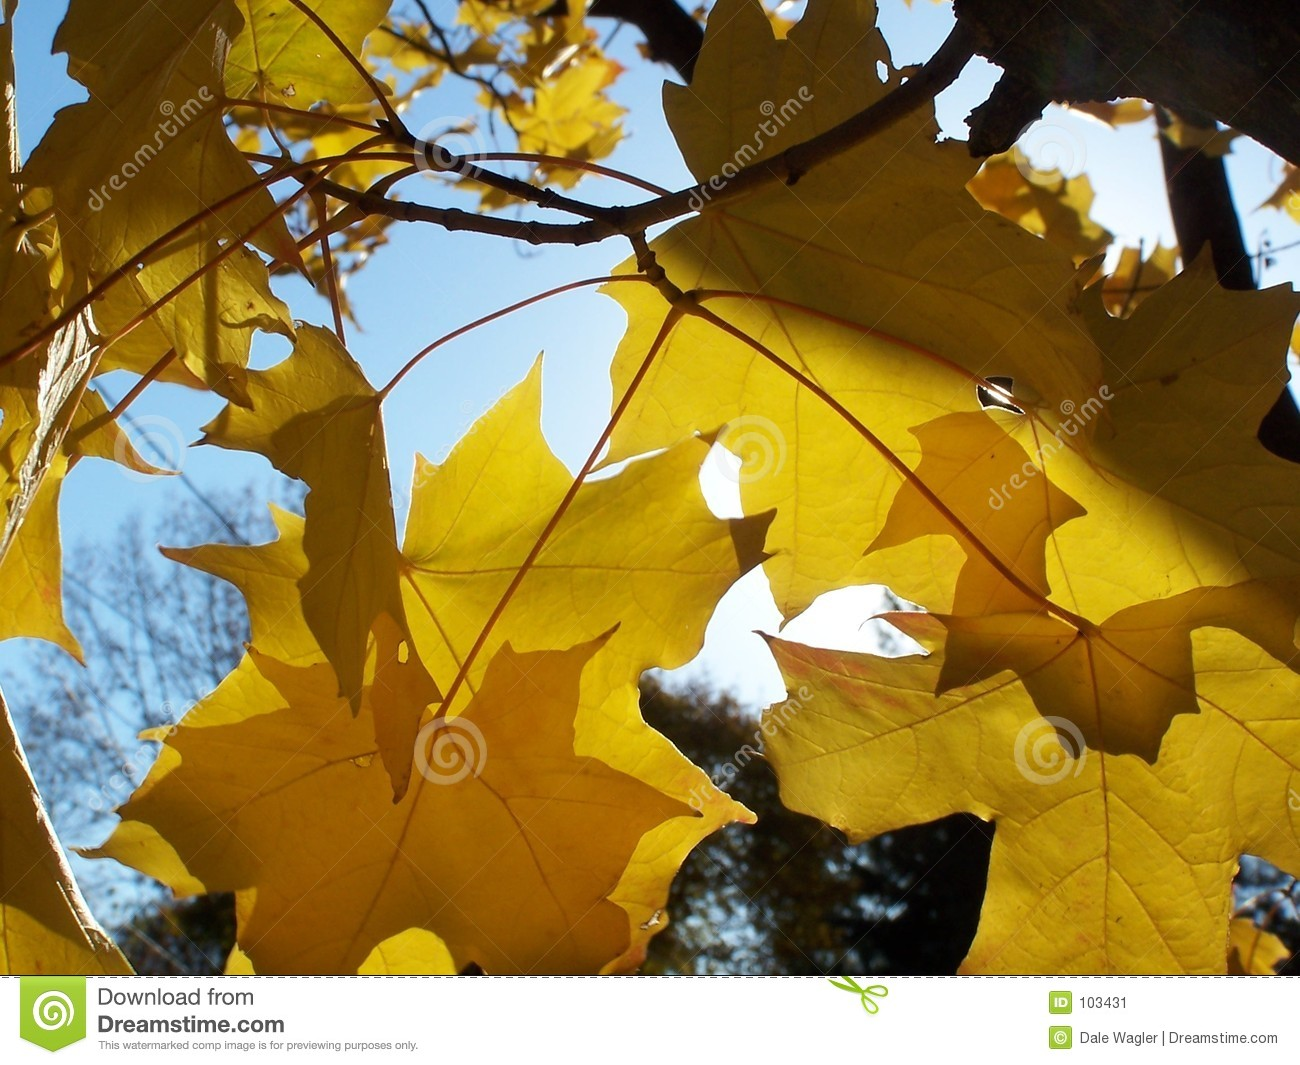 Download Golden leaves stock image. Image of leaves, maple, gold - 103431